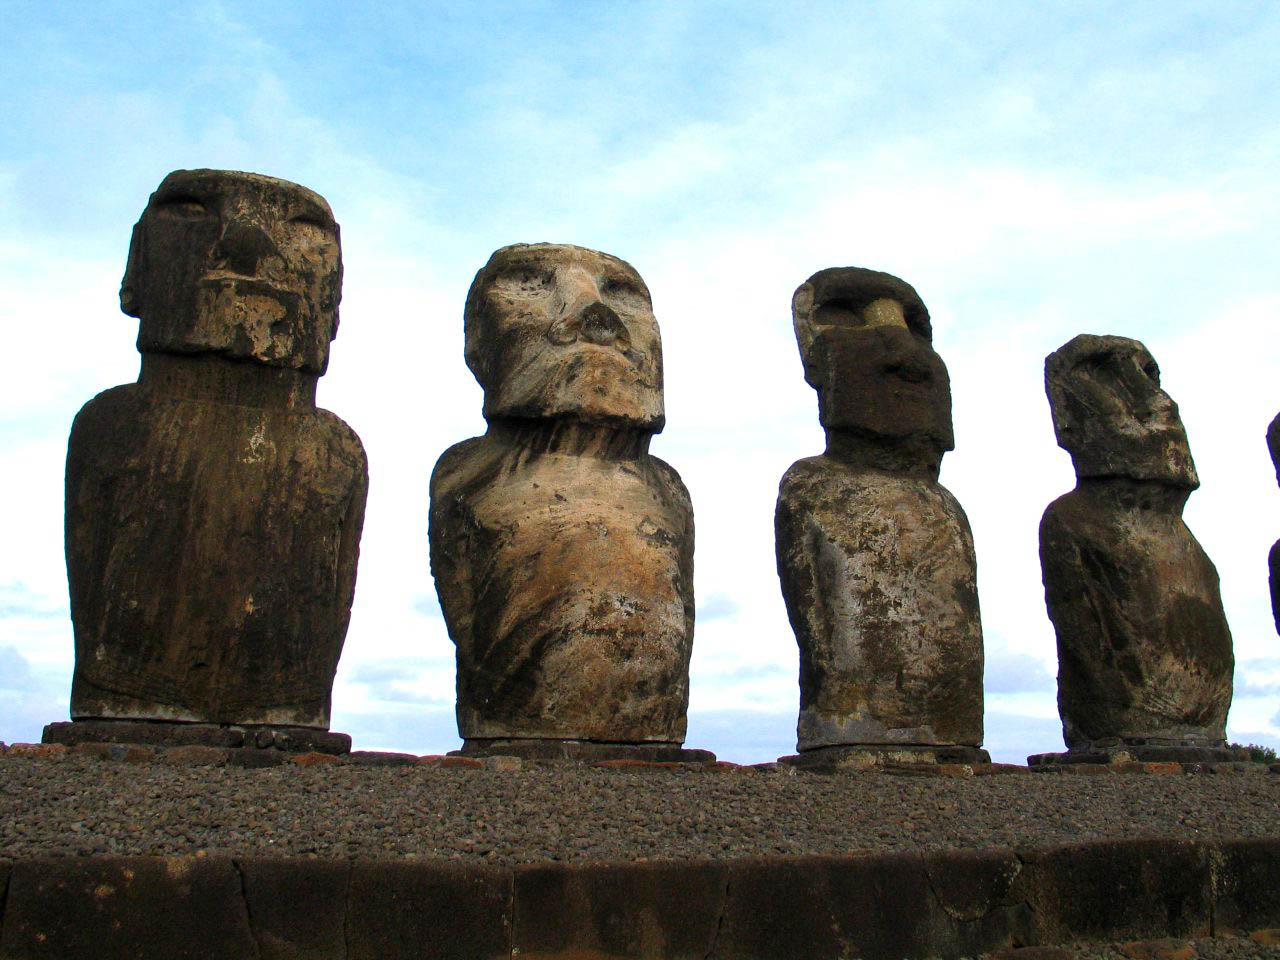 rapa nui10 Gigantic Moai Statues and Heads in Polynesian Easter Island